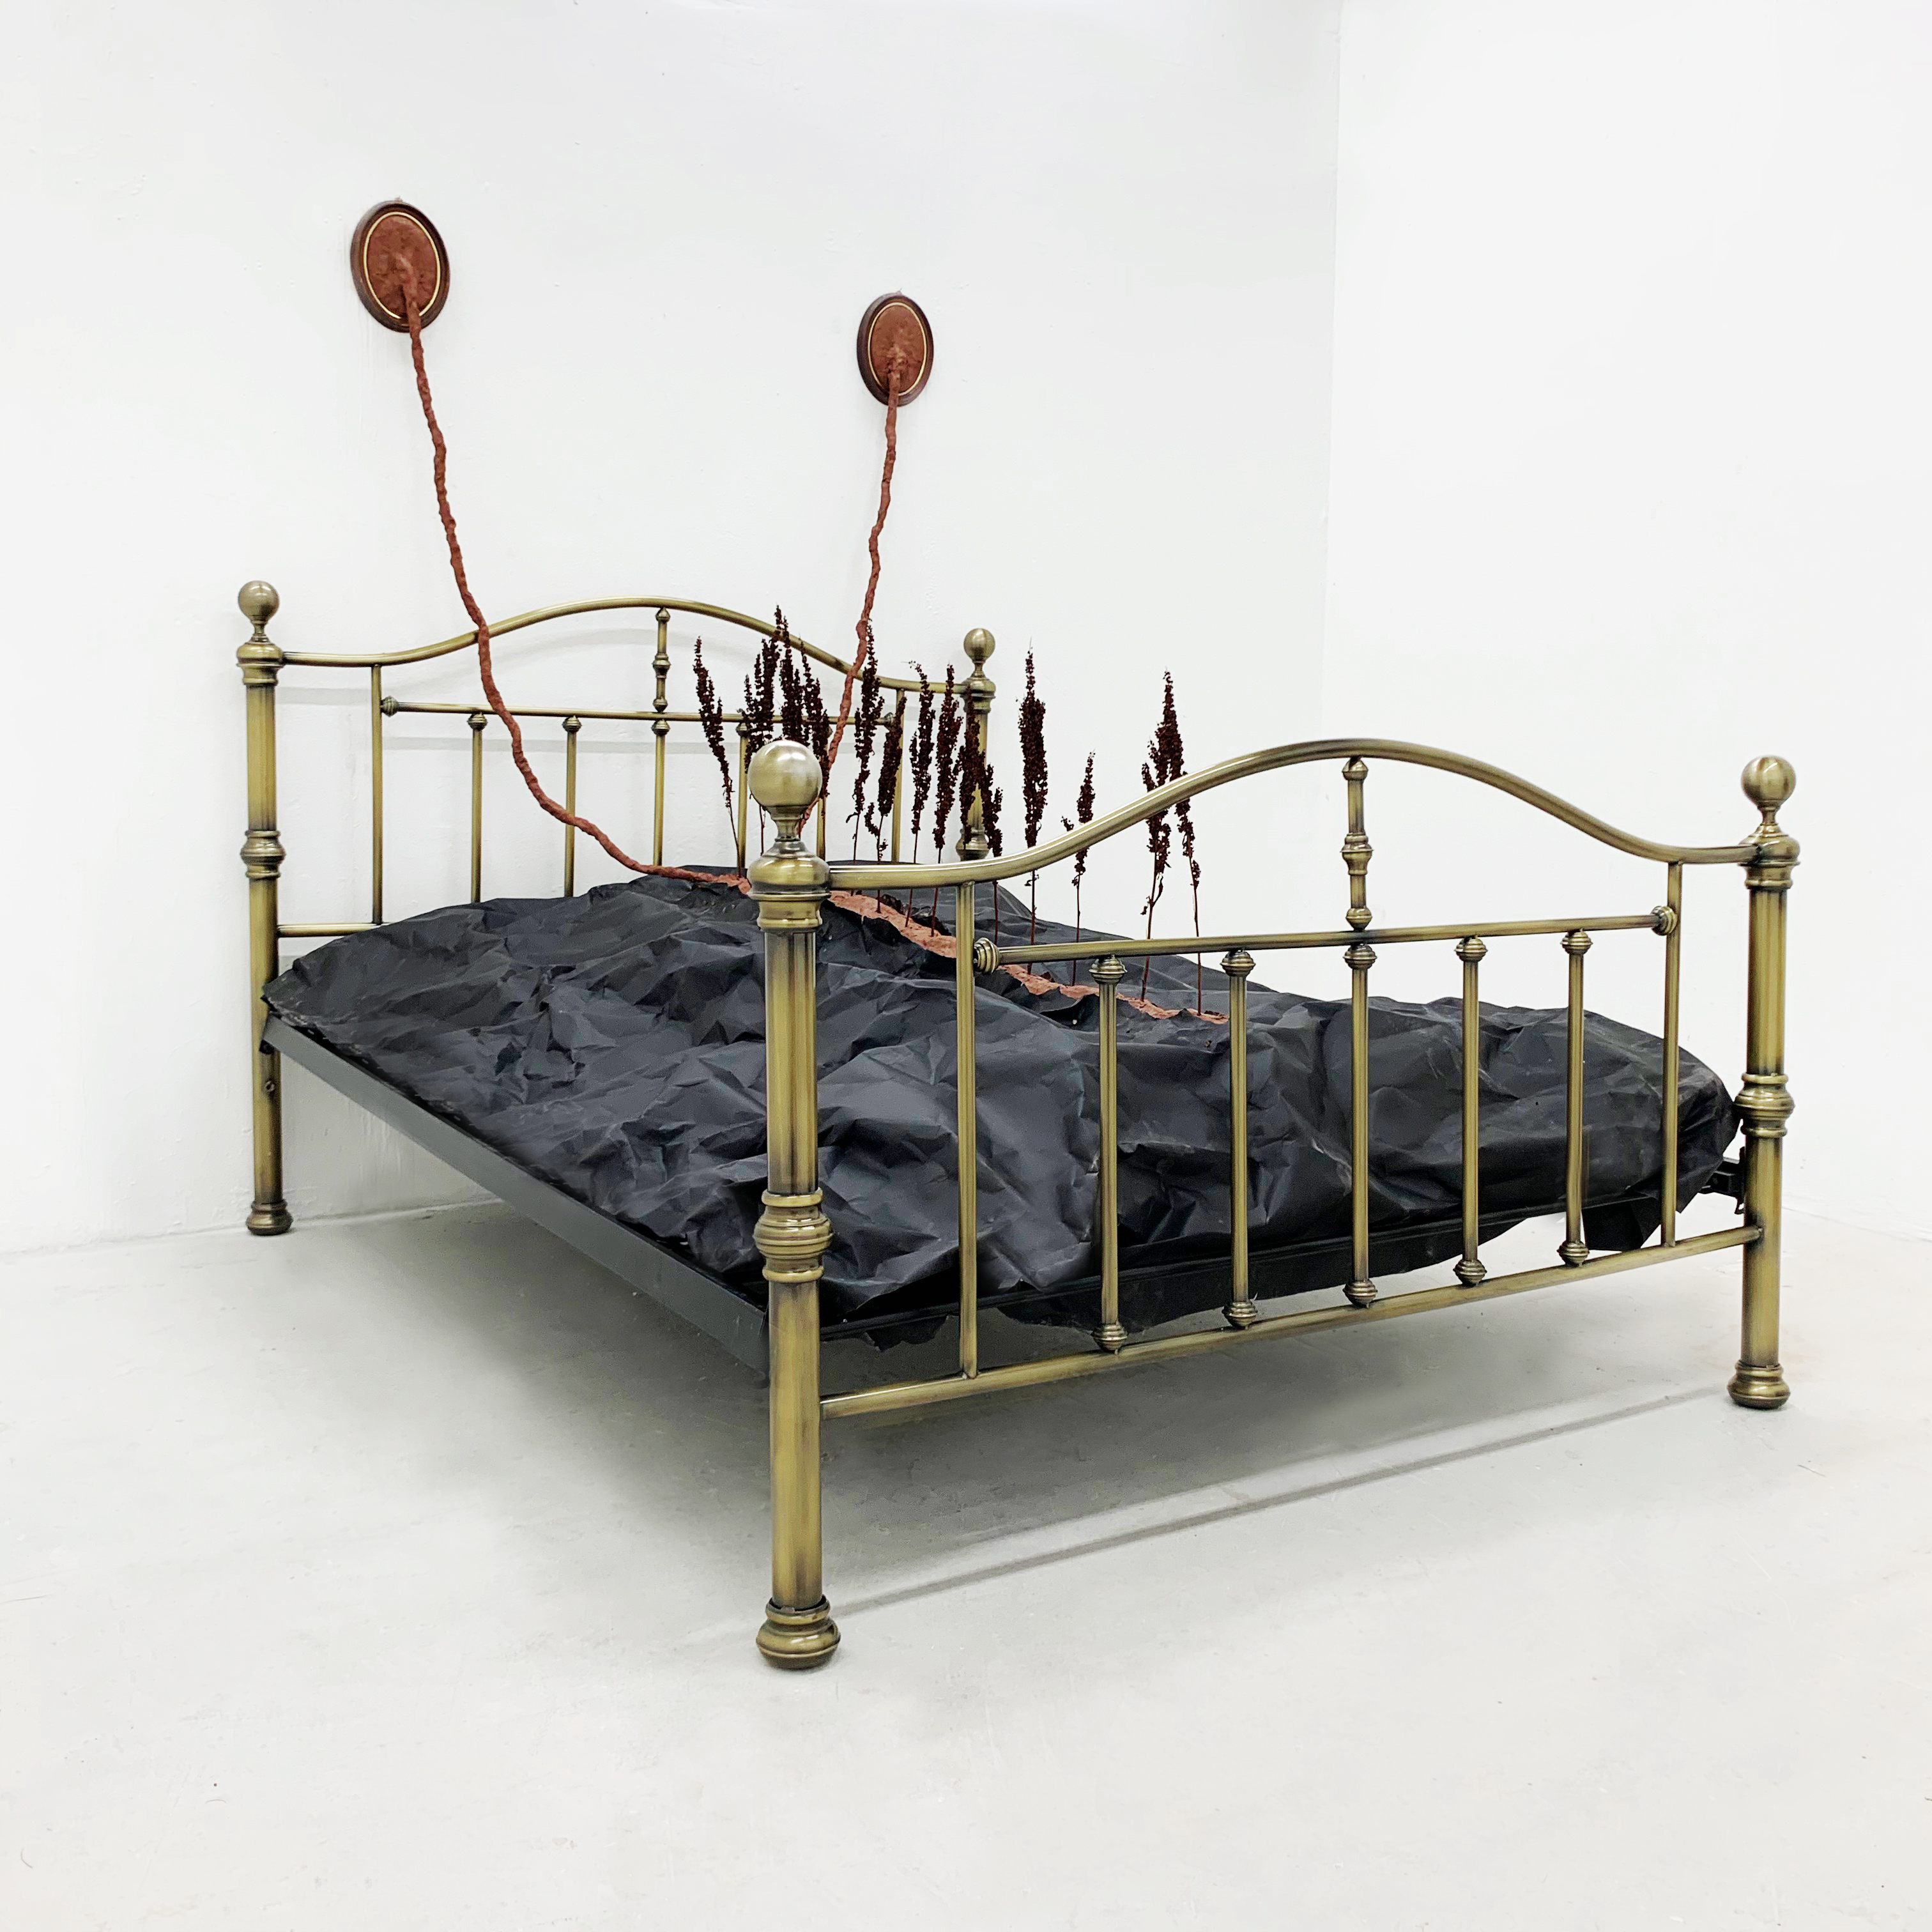 Untitled 2019 (Incubator) Bedstead, clay, paper, plants, wood frames.